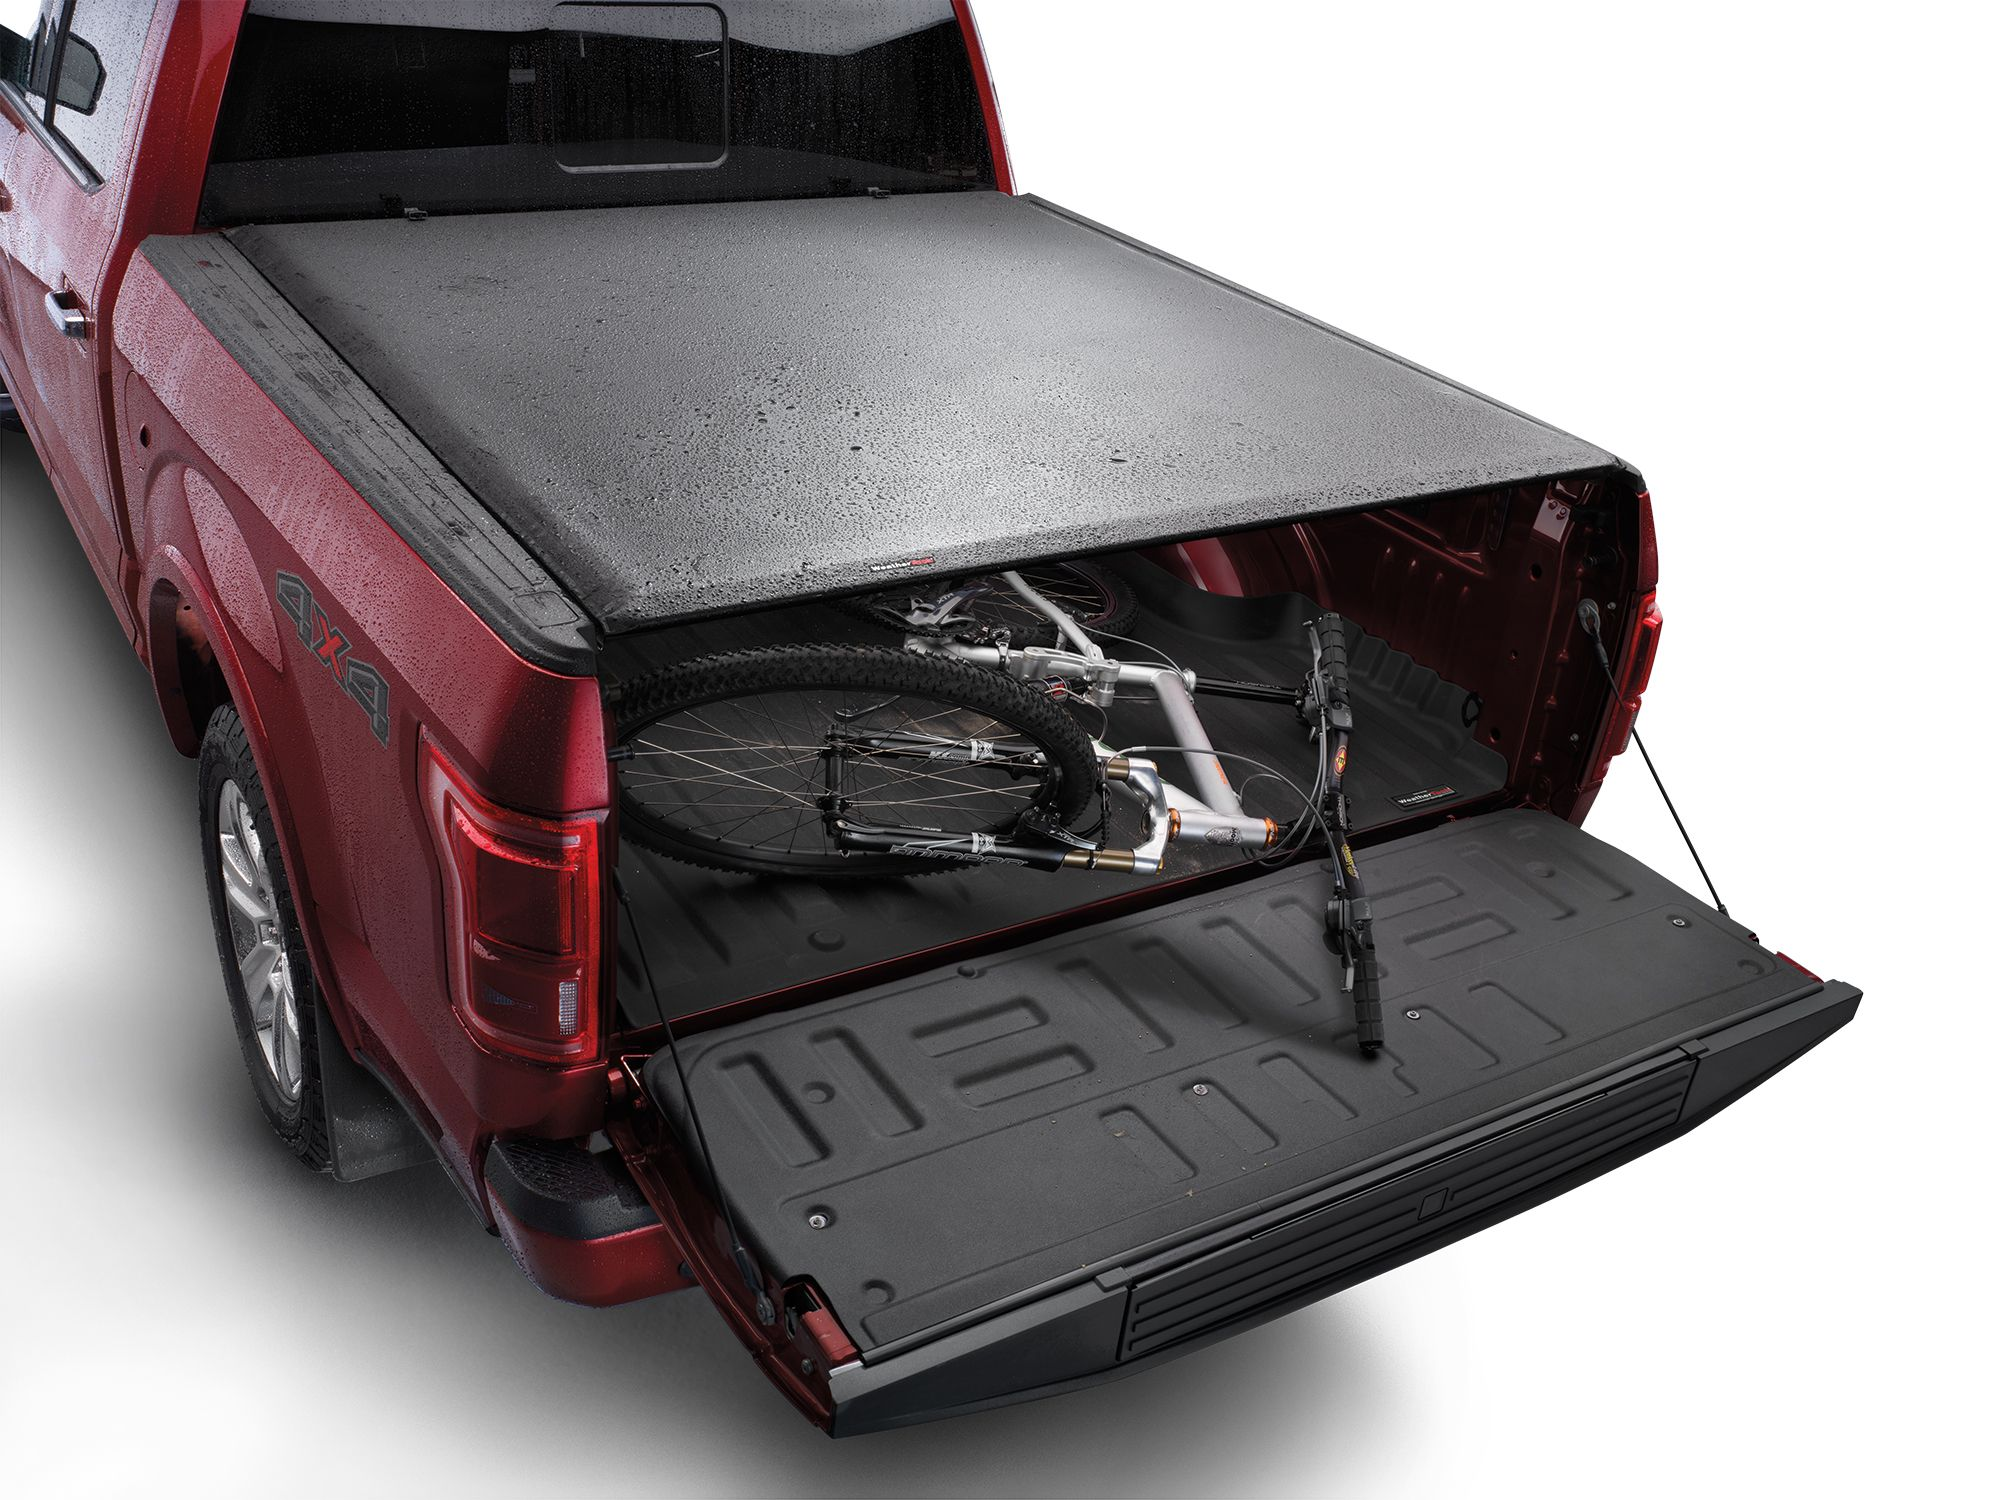 Roll Up Pickup Truck Bed Cover Truck bed covers, Truck